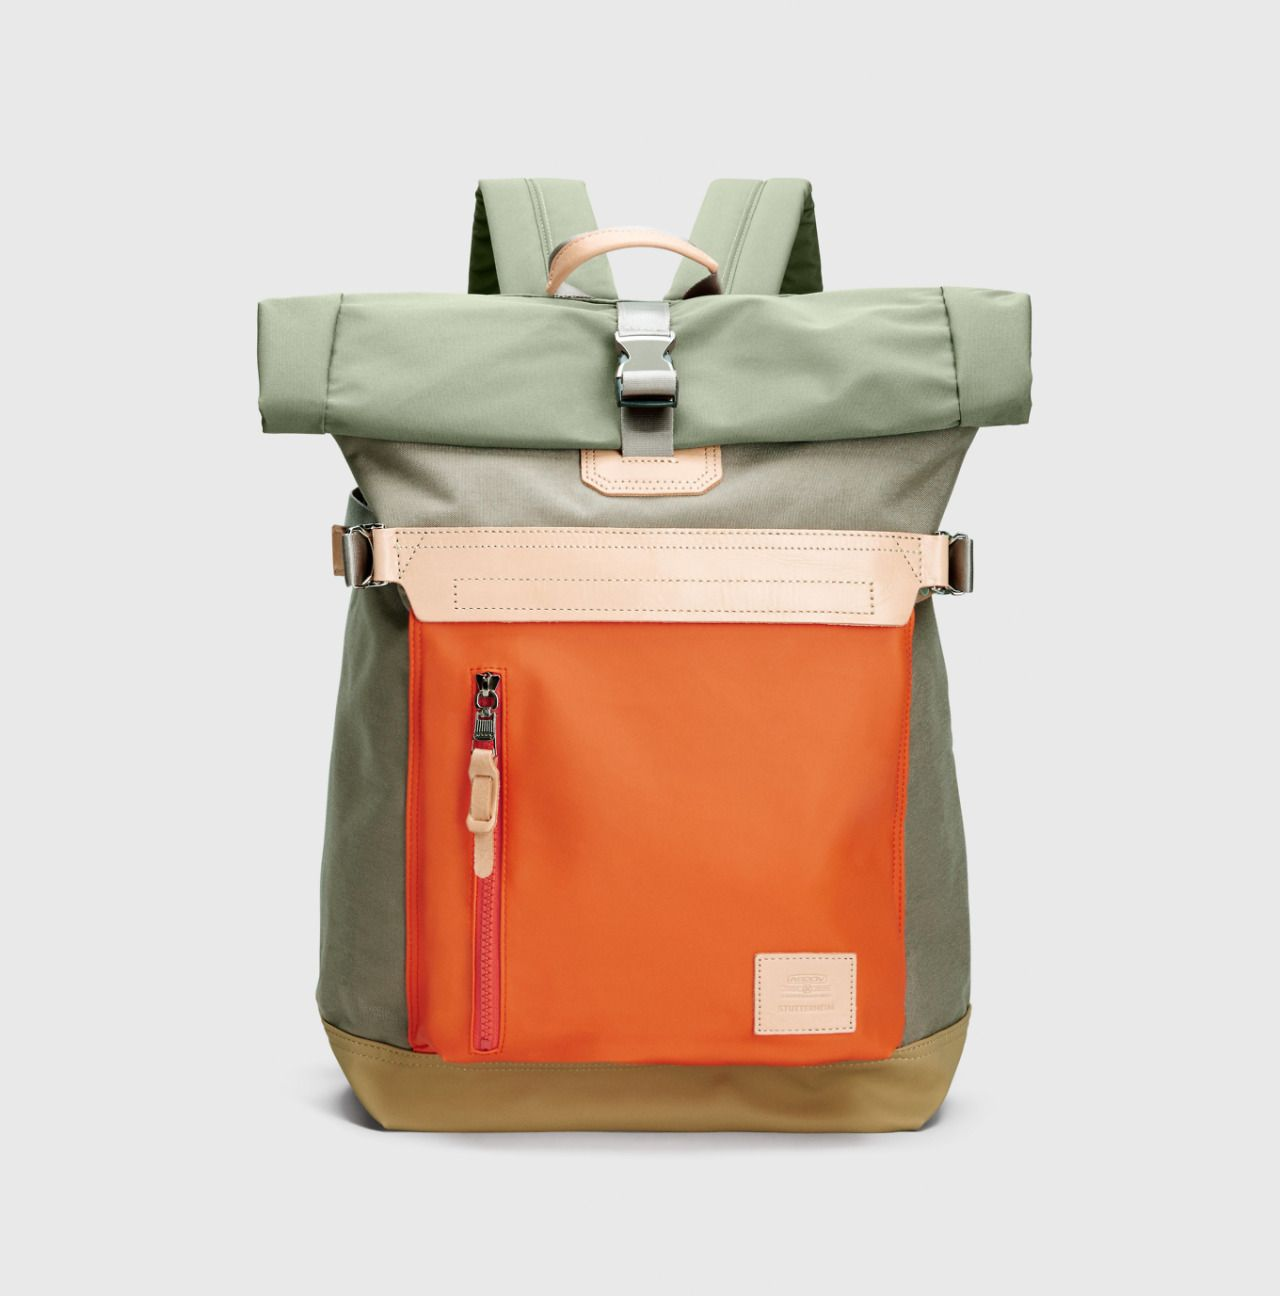 Formuswithlove Hackas Ikeatoday S Latest Addition To The Range Of Kitchen Handles Designed As A Simple T Profile In Thr Bags Rolltop Backpack Japanese Bag